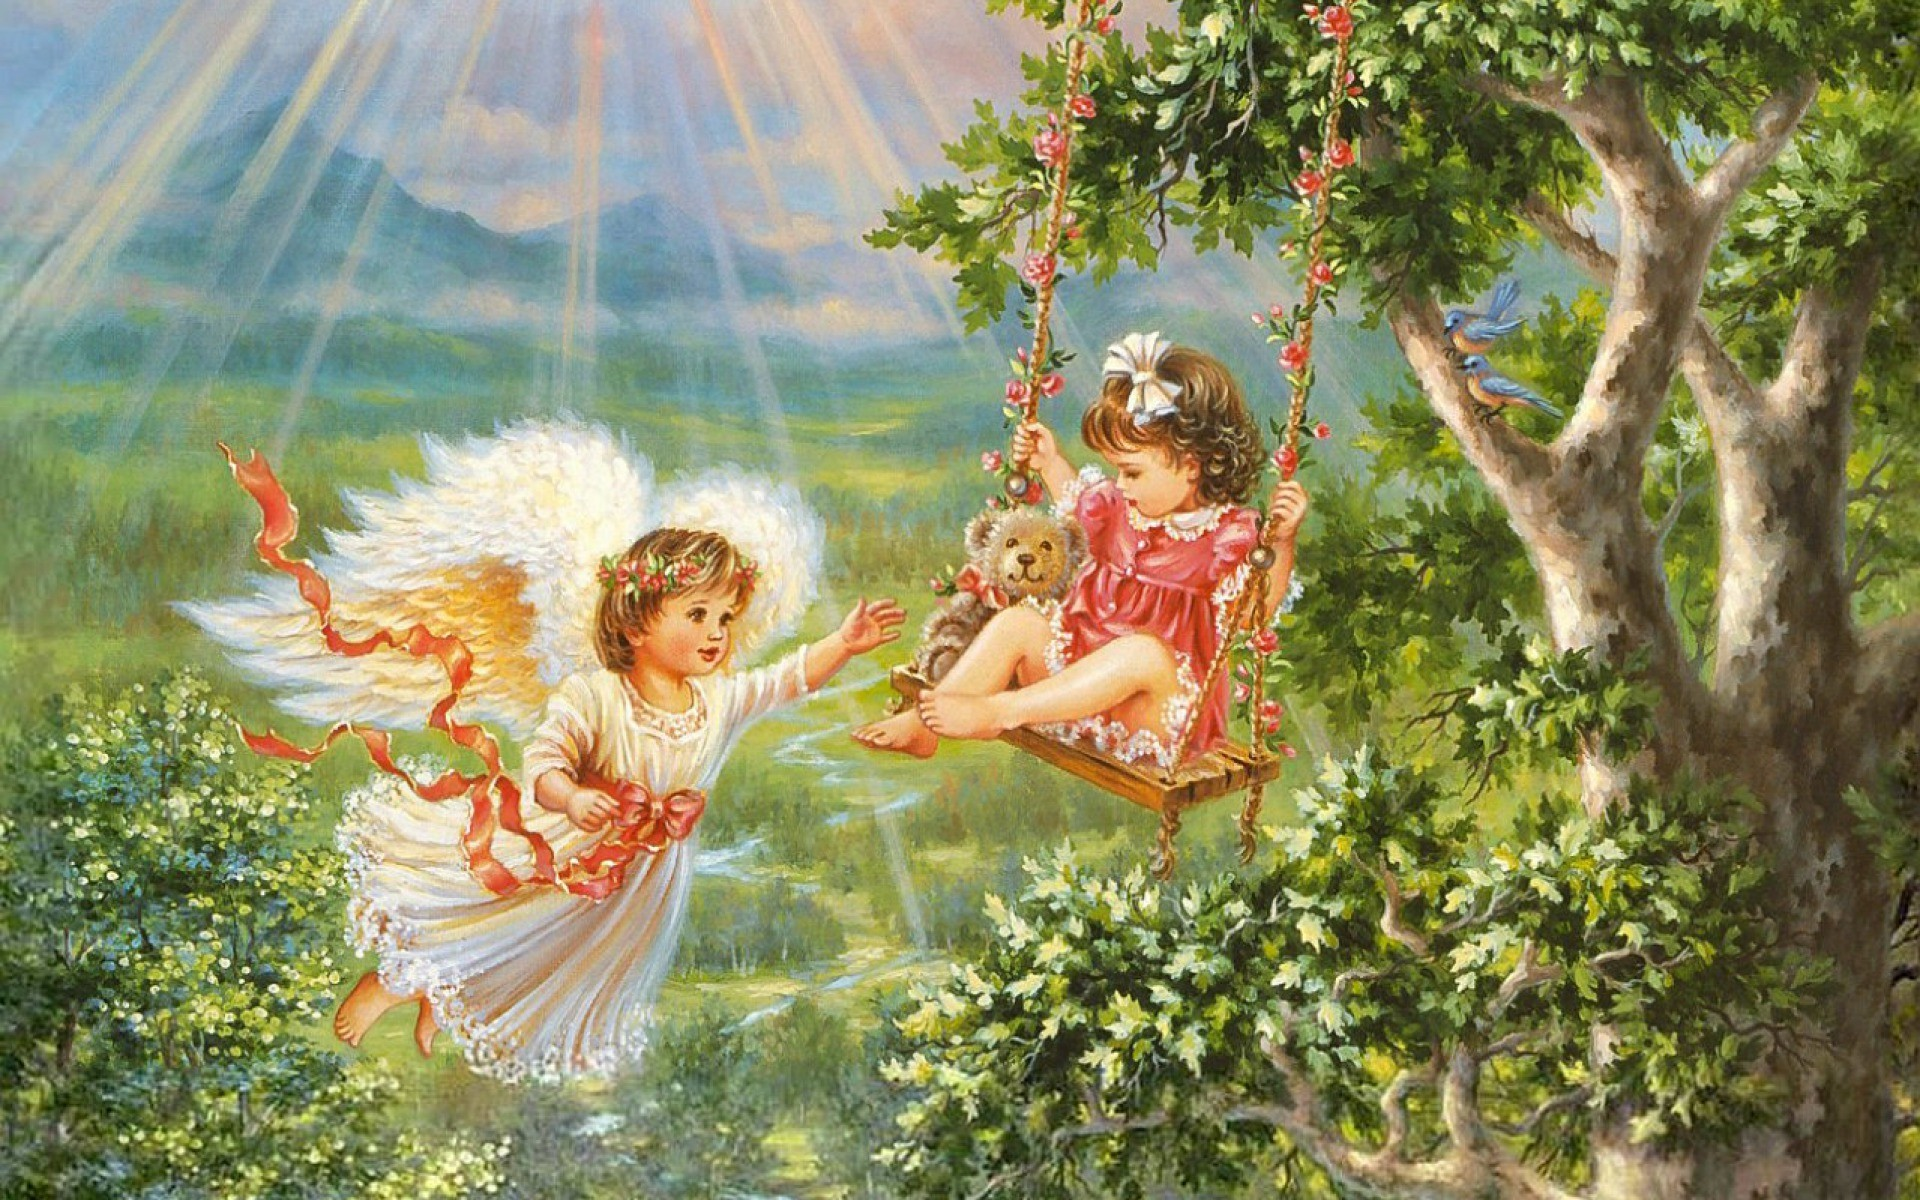 Res: 1920x1200, Image: Angel Child Swing Forest wallpapers and stock photos. Â«